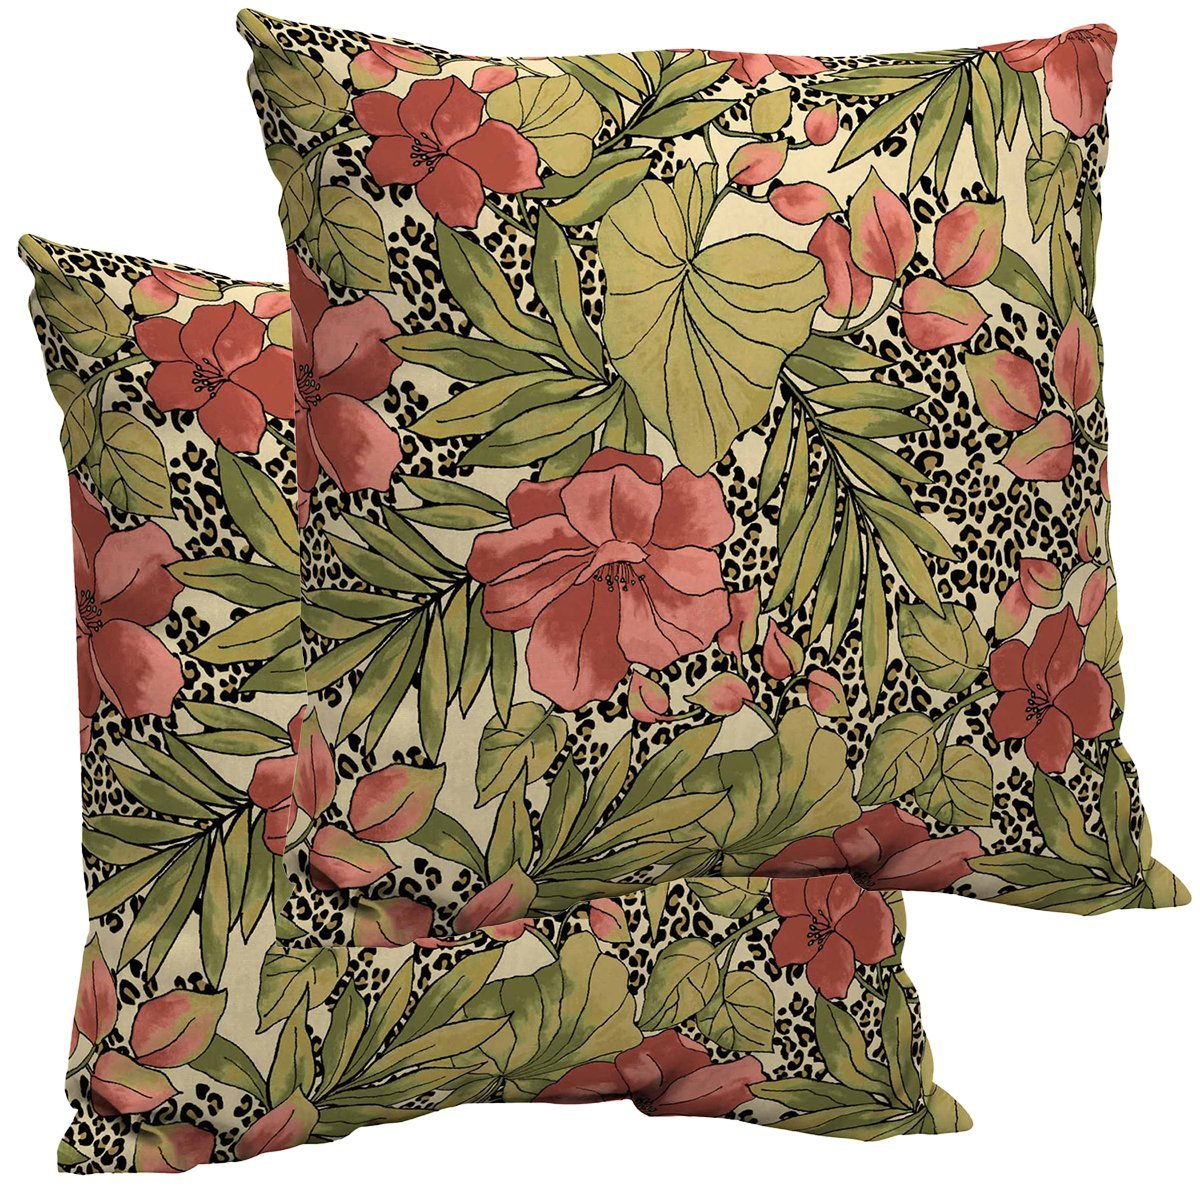 Comfort Classics Inc. SET OF 2 Outdoor Patio Dining Chair Pillow Back 21x21x5. Polyester fabric Jungle Floral